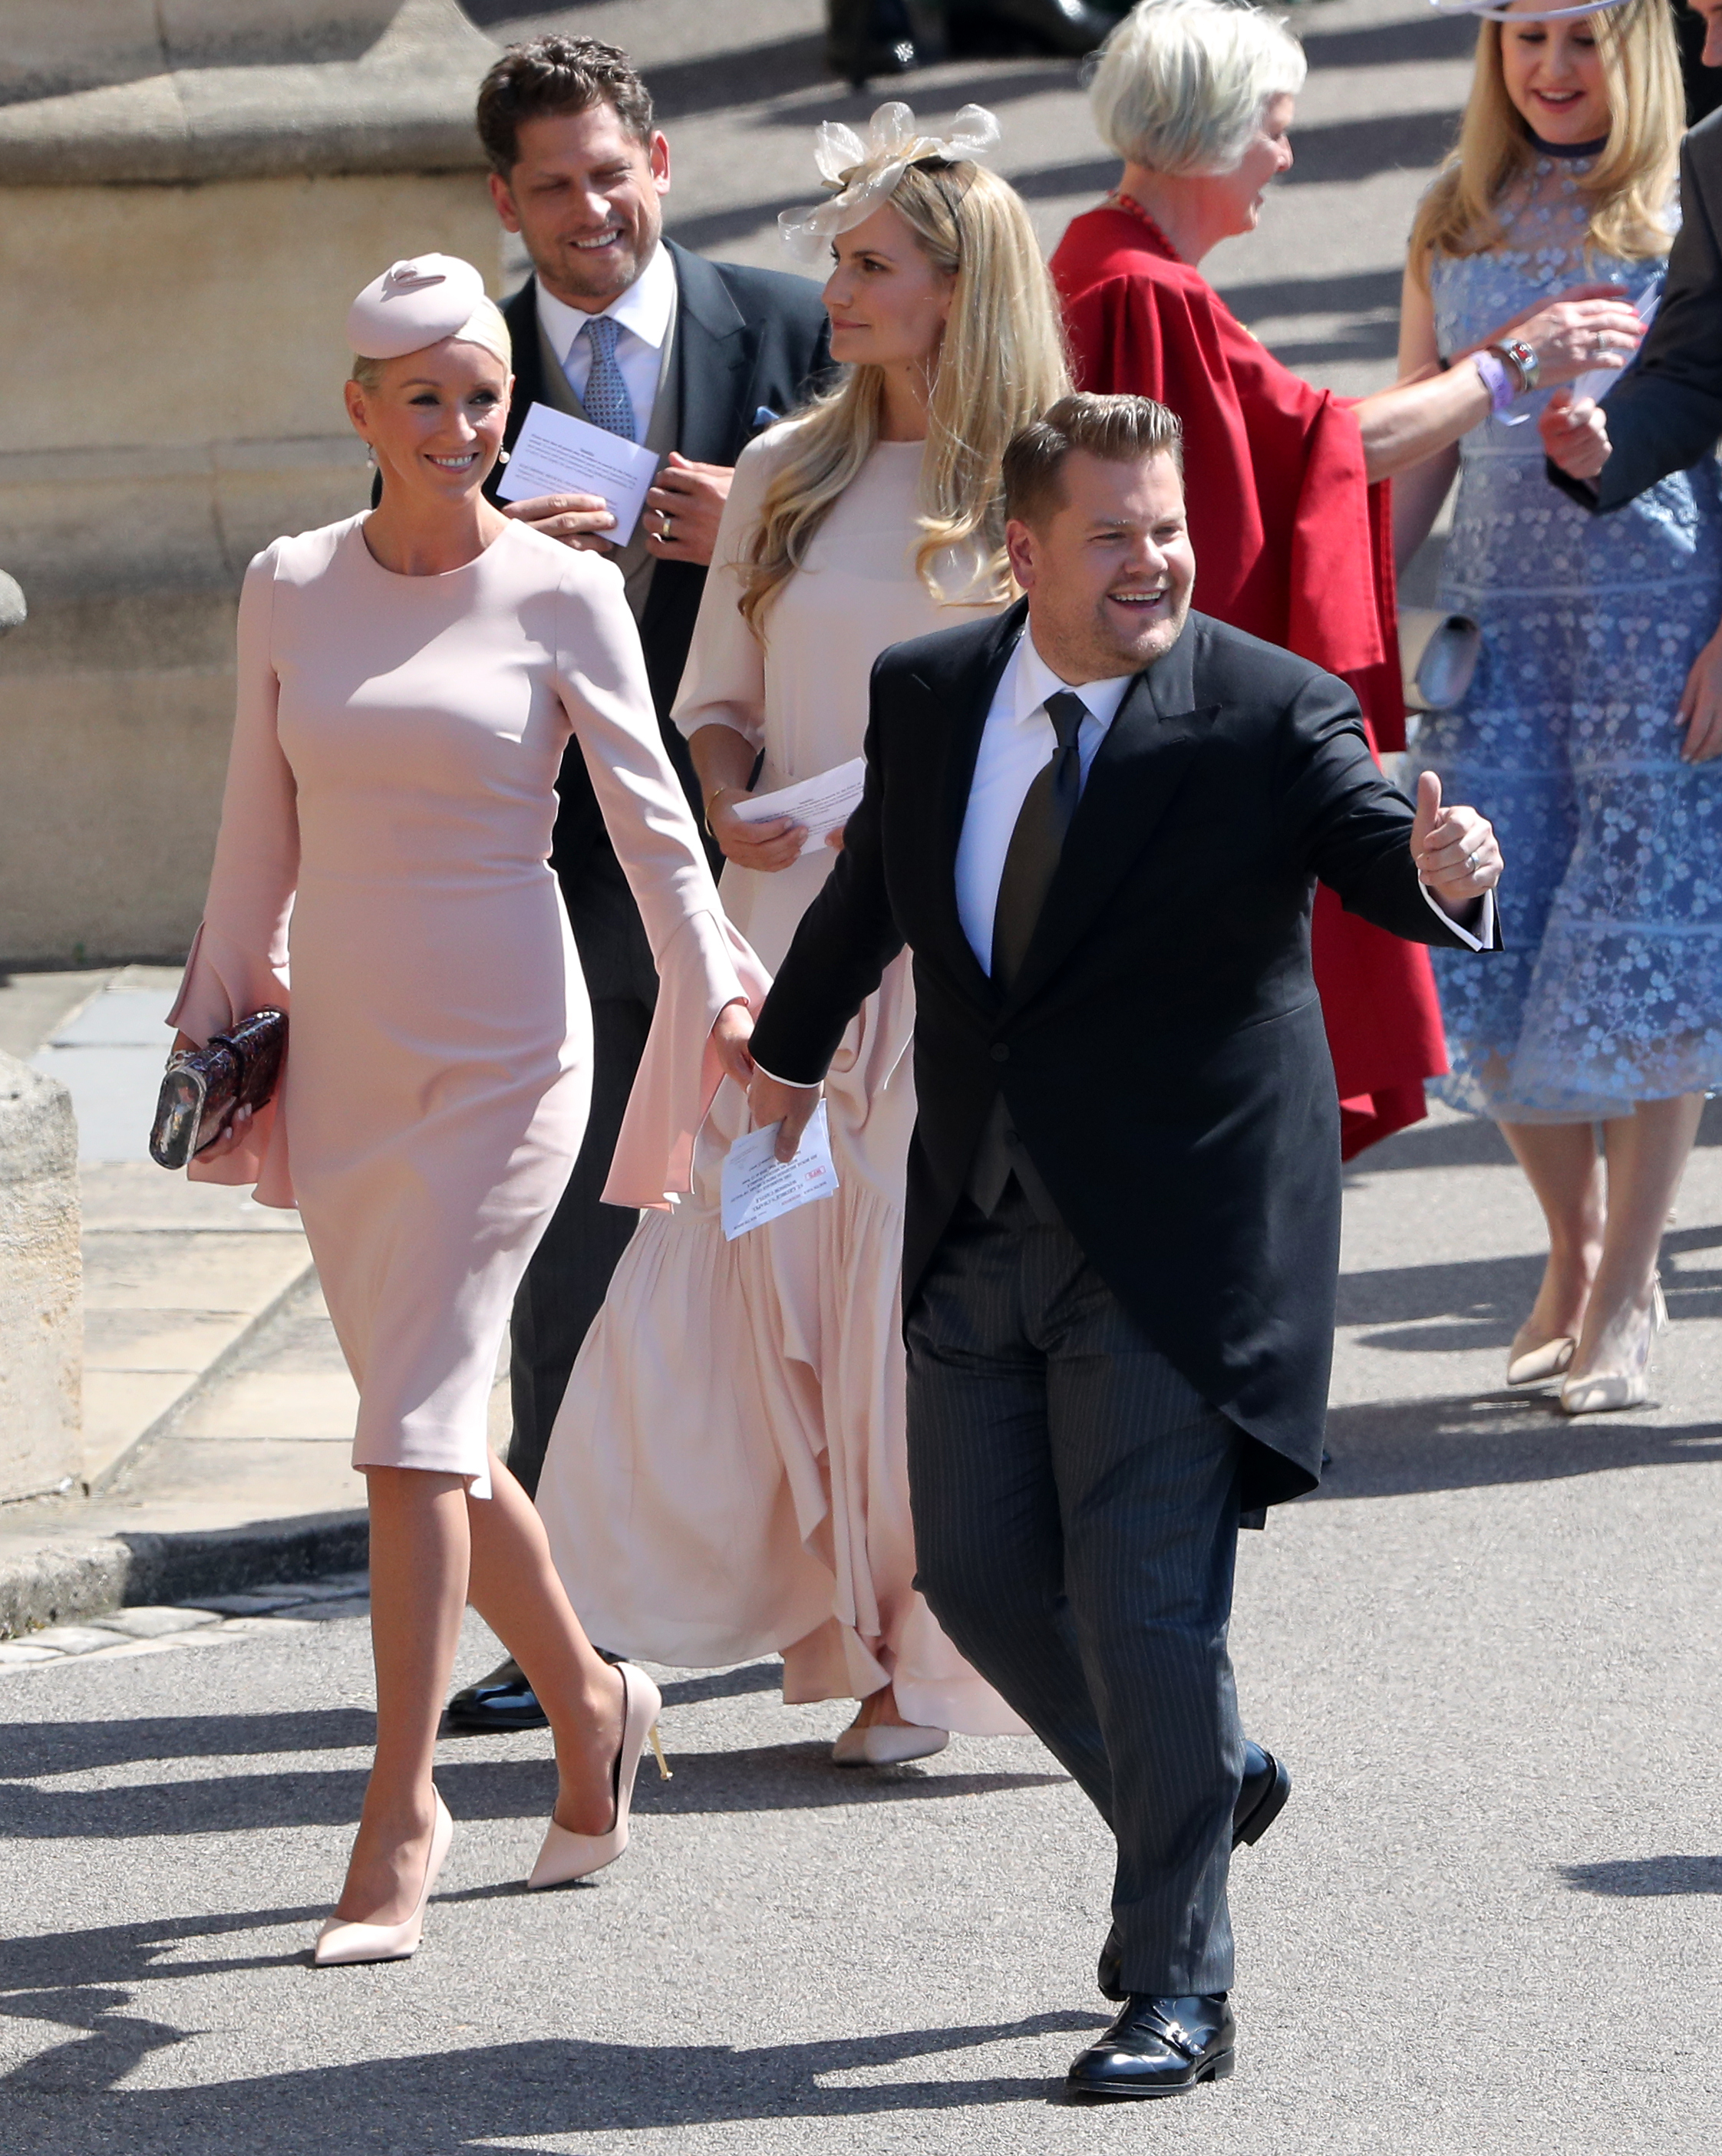 James Corden and Julia Carey arrive for the weddin